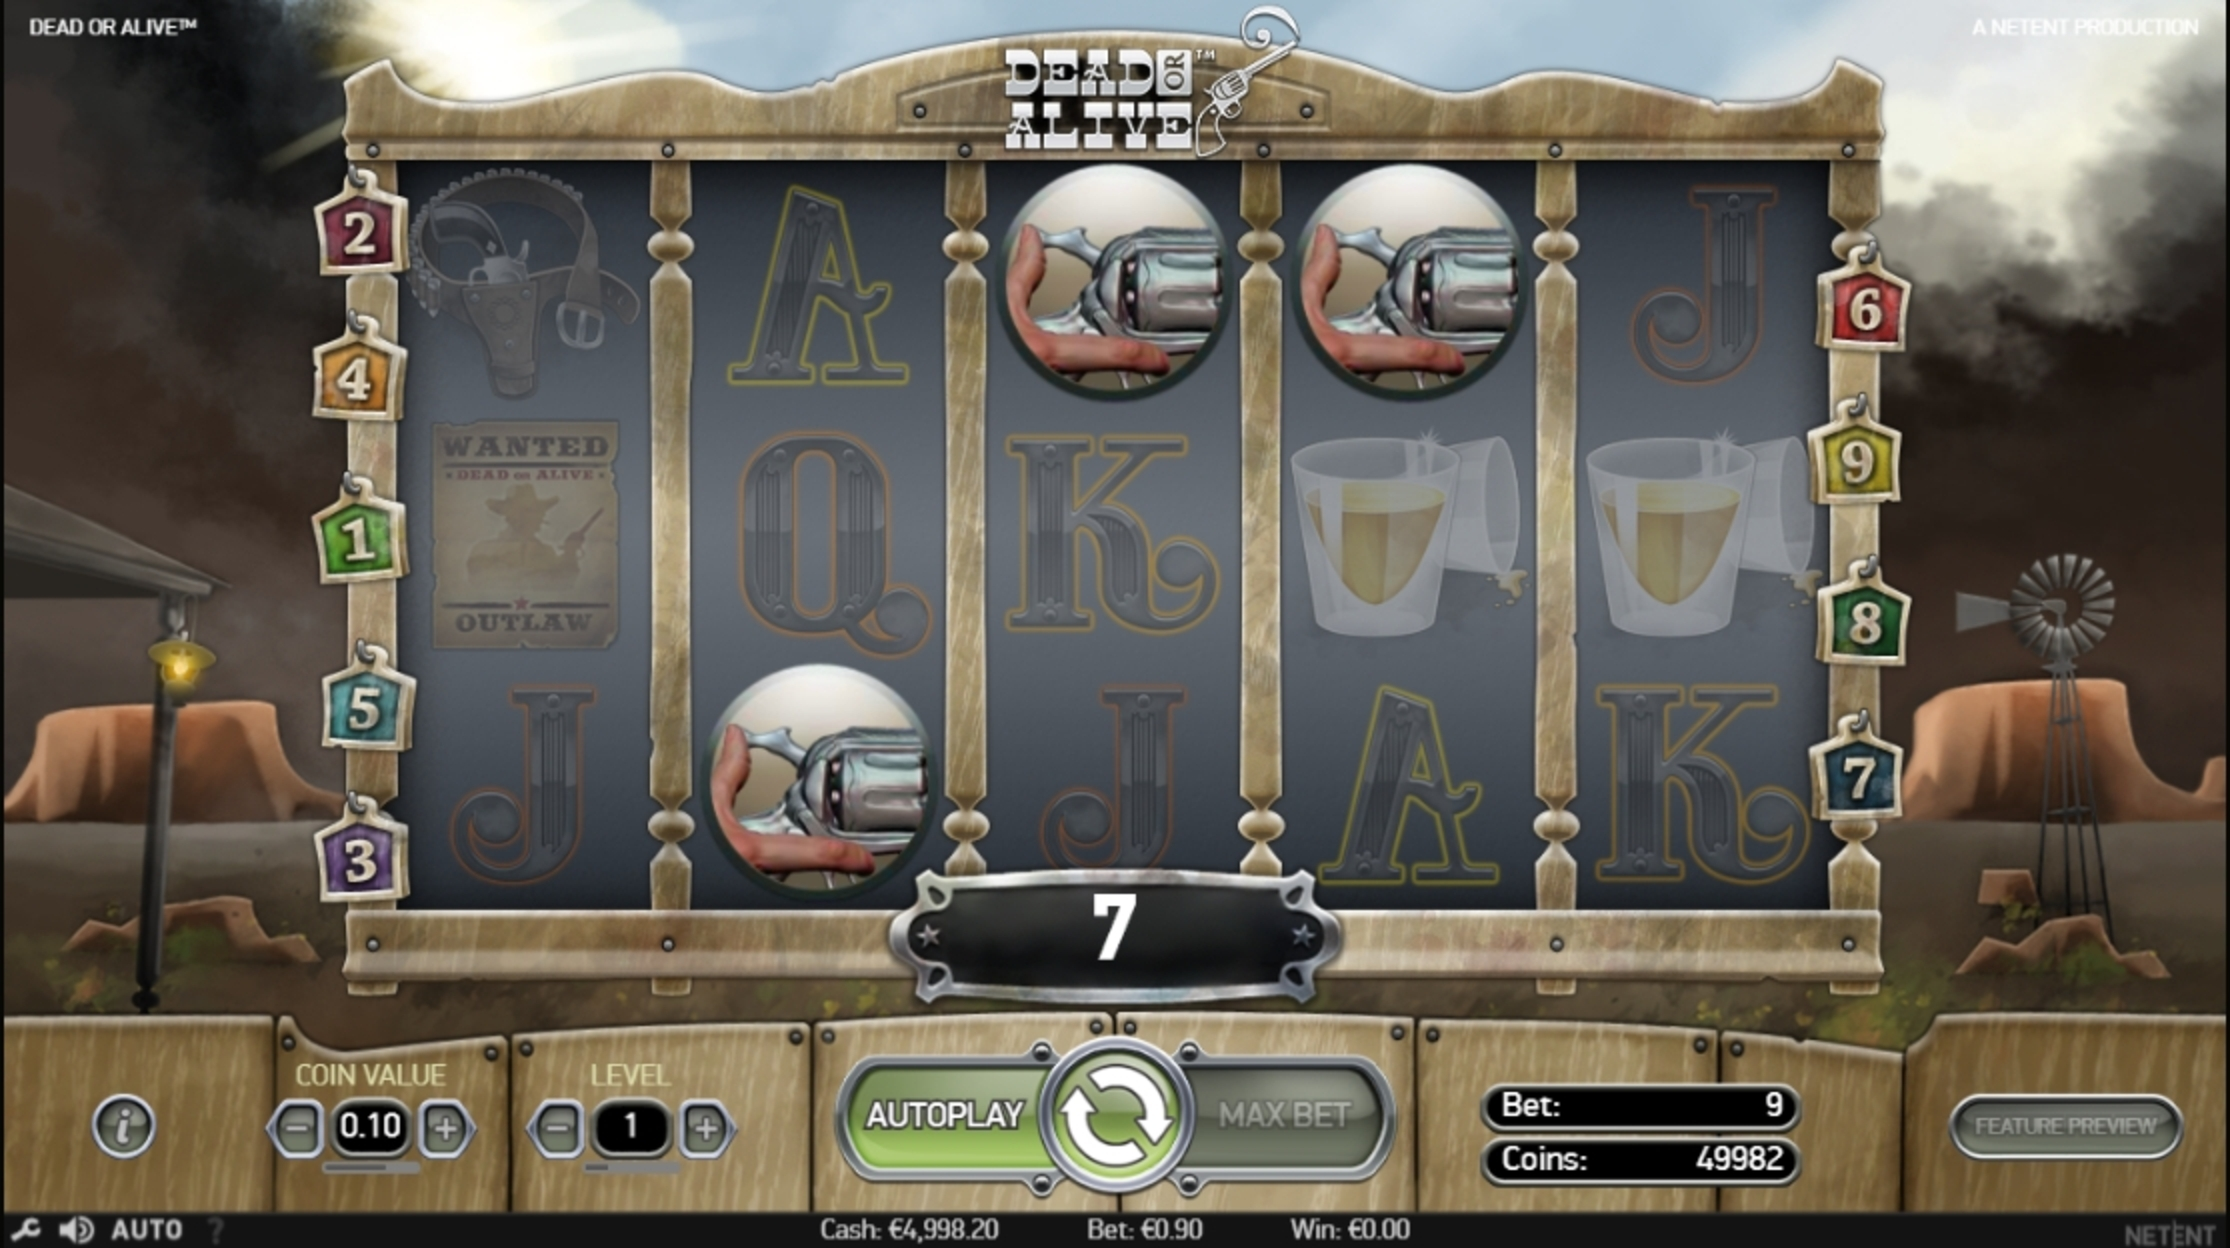 Win Money in Dead or Alive Free Slot Game by NetEnt